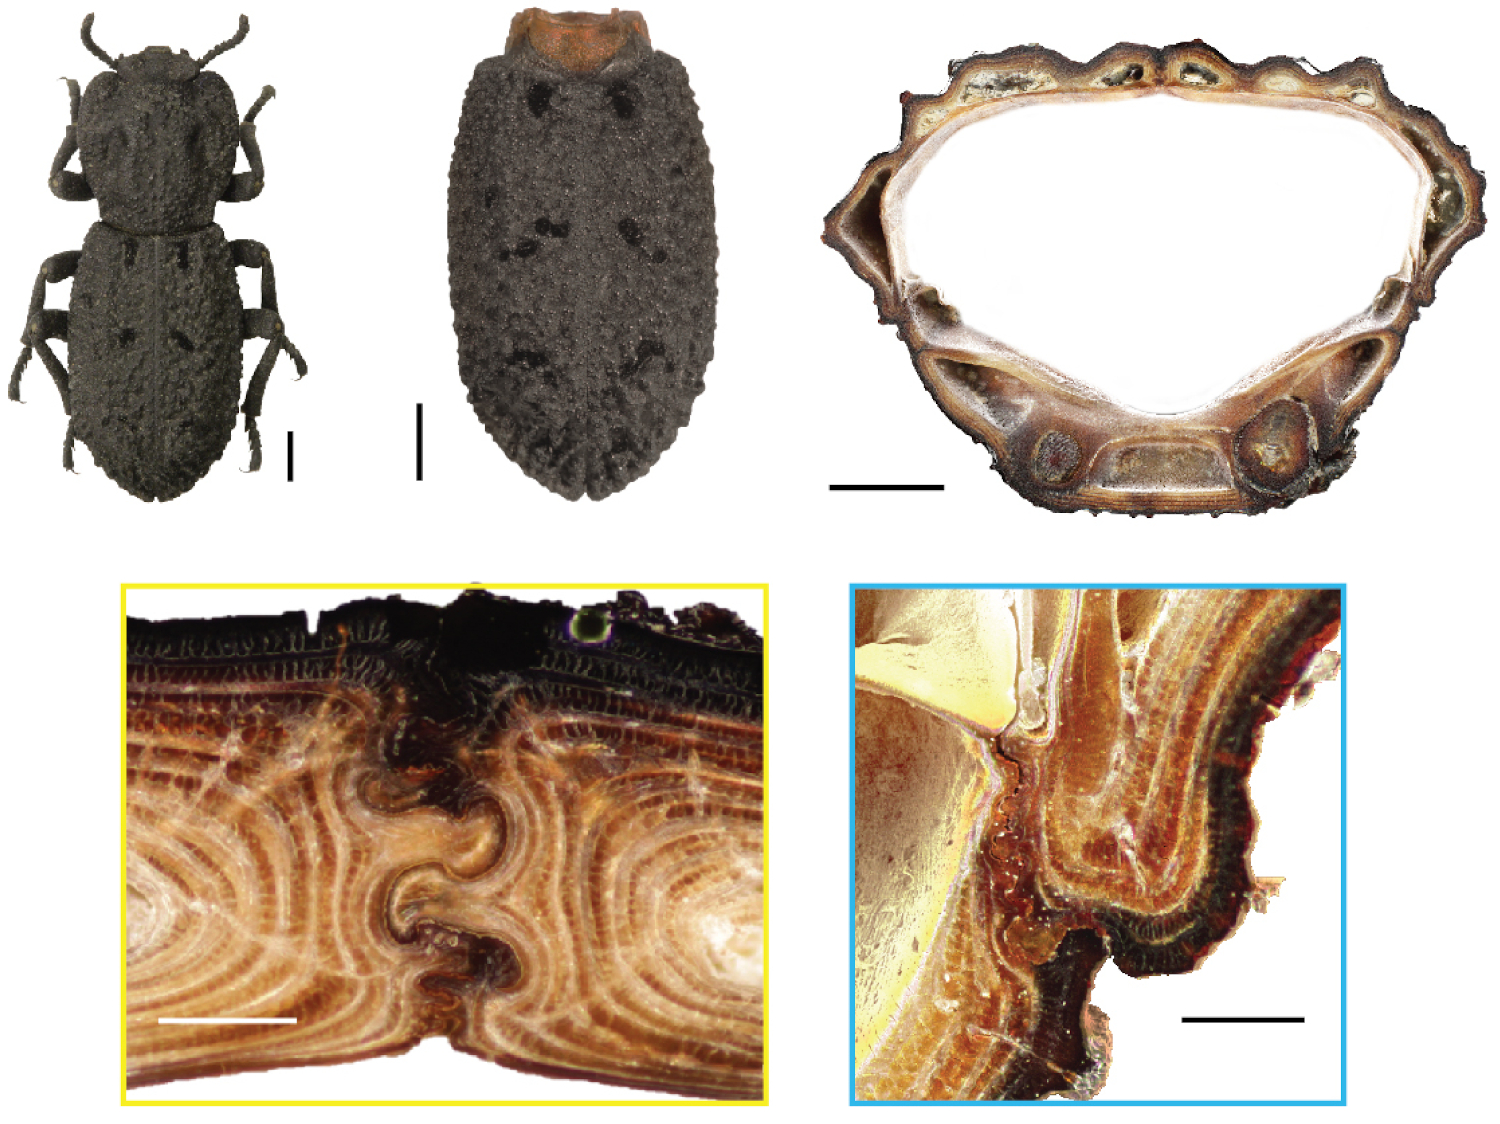 Images - These images show the diabolical ironclad beetle (top left) and how its abdomen (top middle and right) contains an internal architecture (bottom) featuring puzzle piece-like joints (bottom left) that make it incredibly crush-resistant. (Credit: UC Irvine)